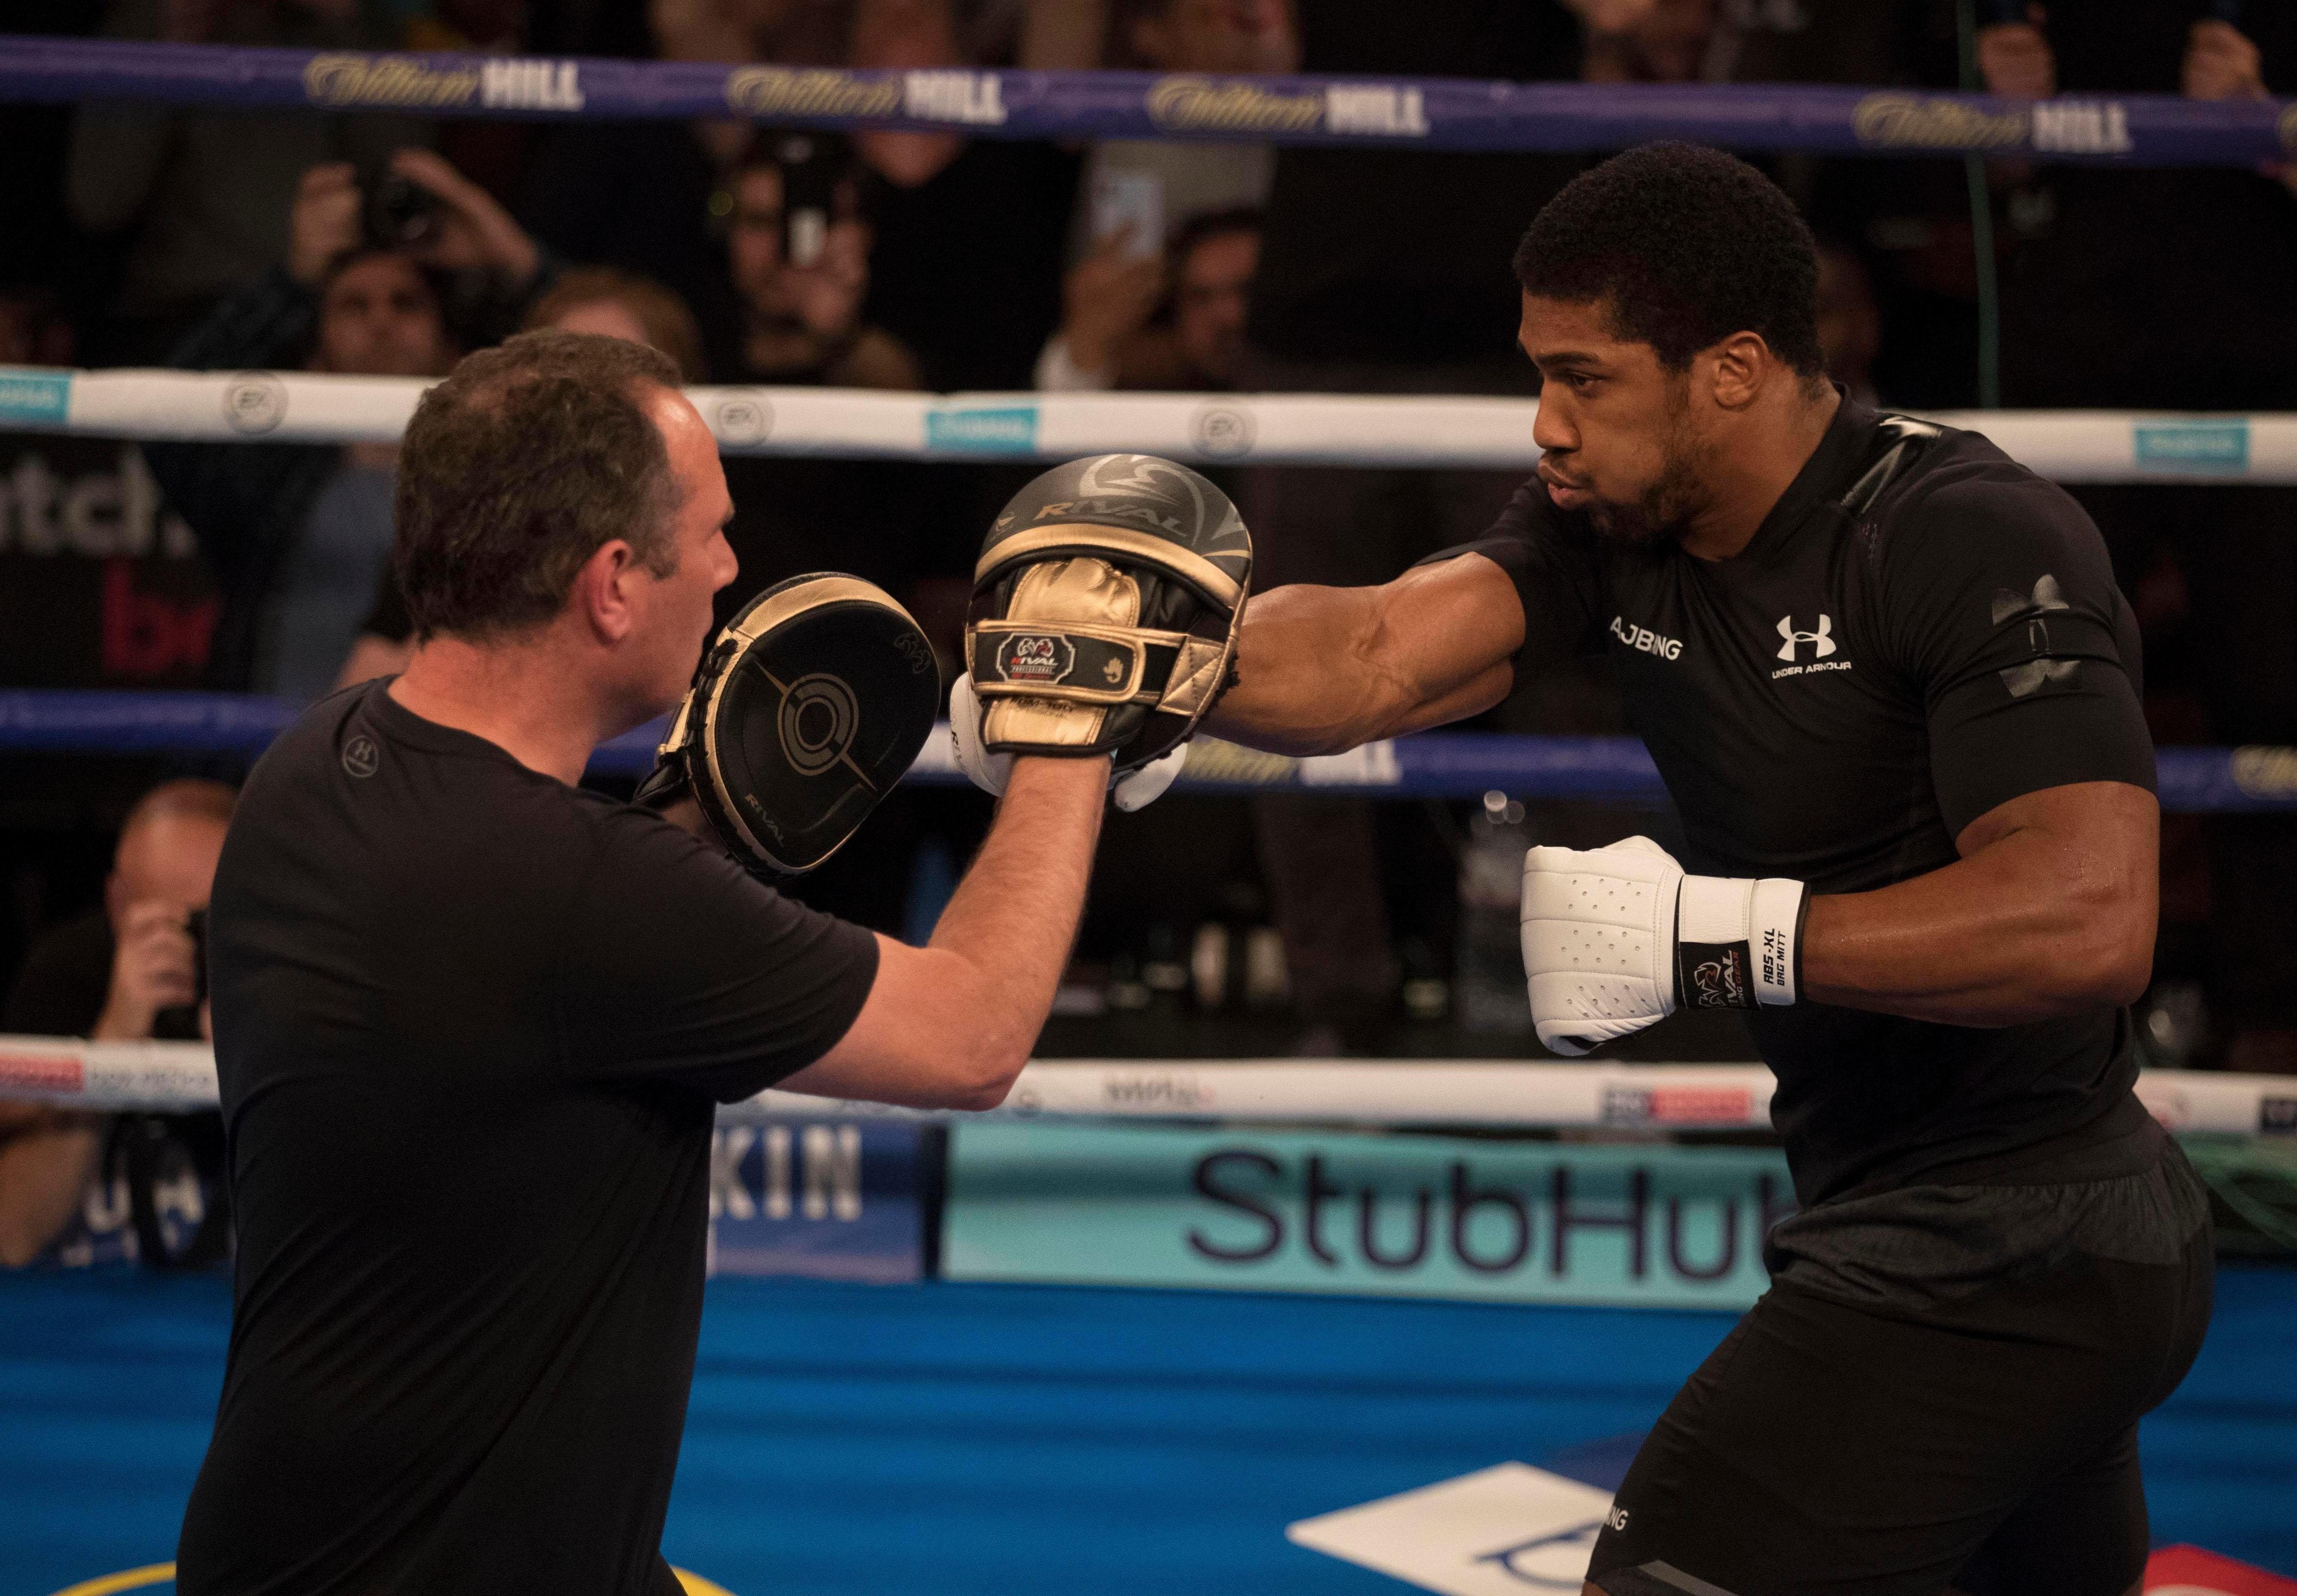 Should Anthony Joshua get past Alexander Povetkin could the unification scrap against Deotnay Wilder finally happen?